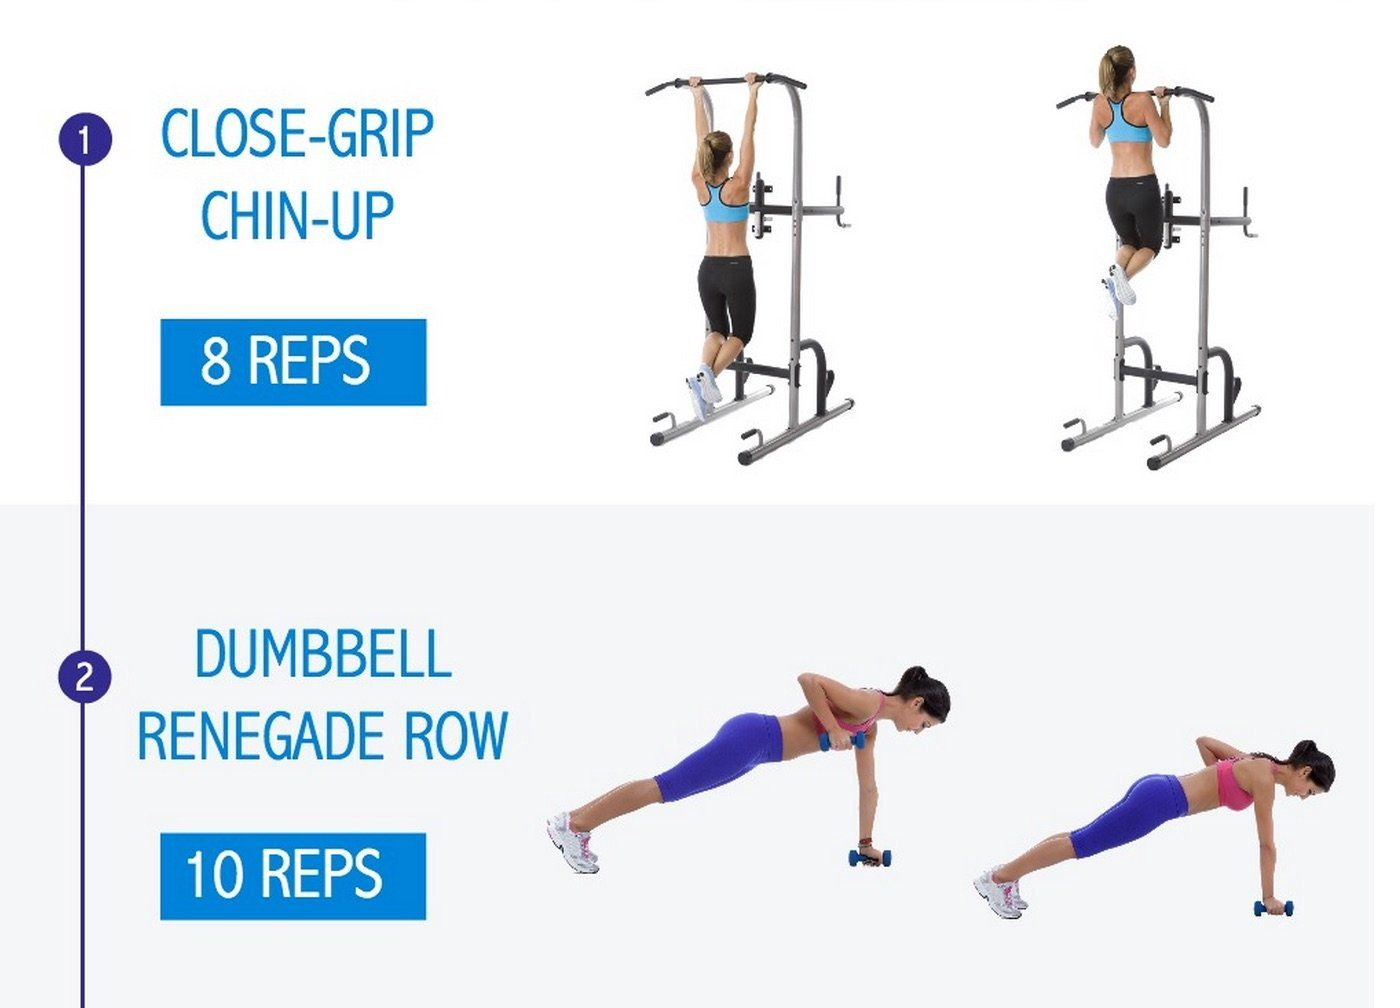 Pin On Exercises-3917